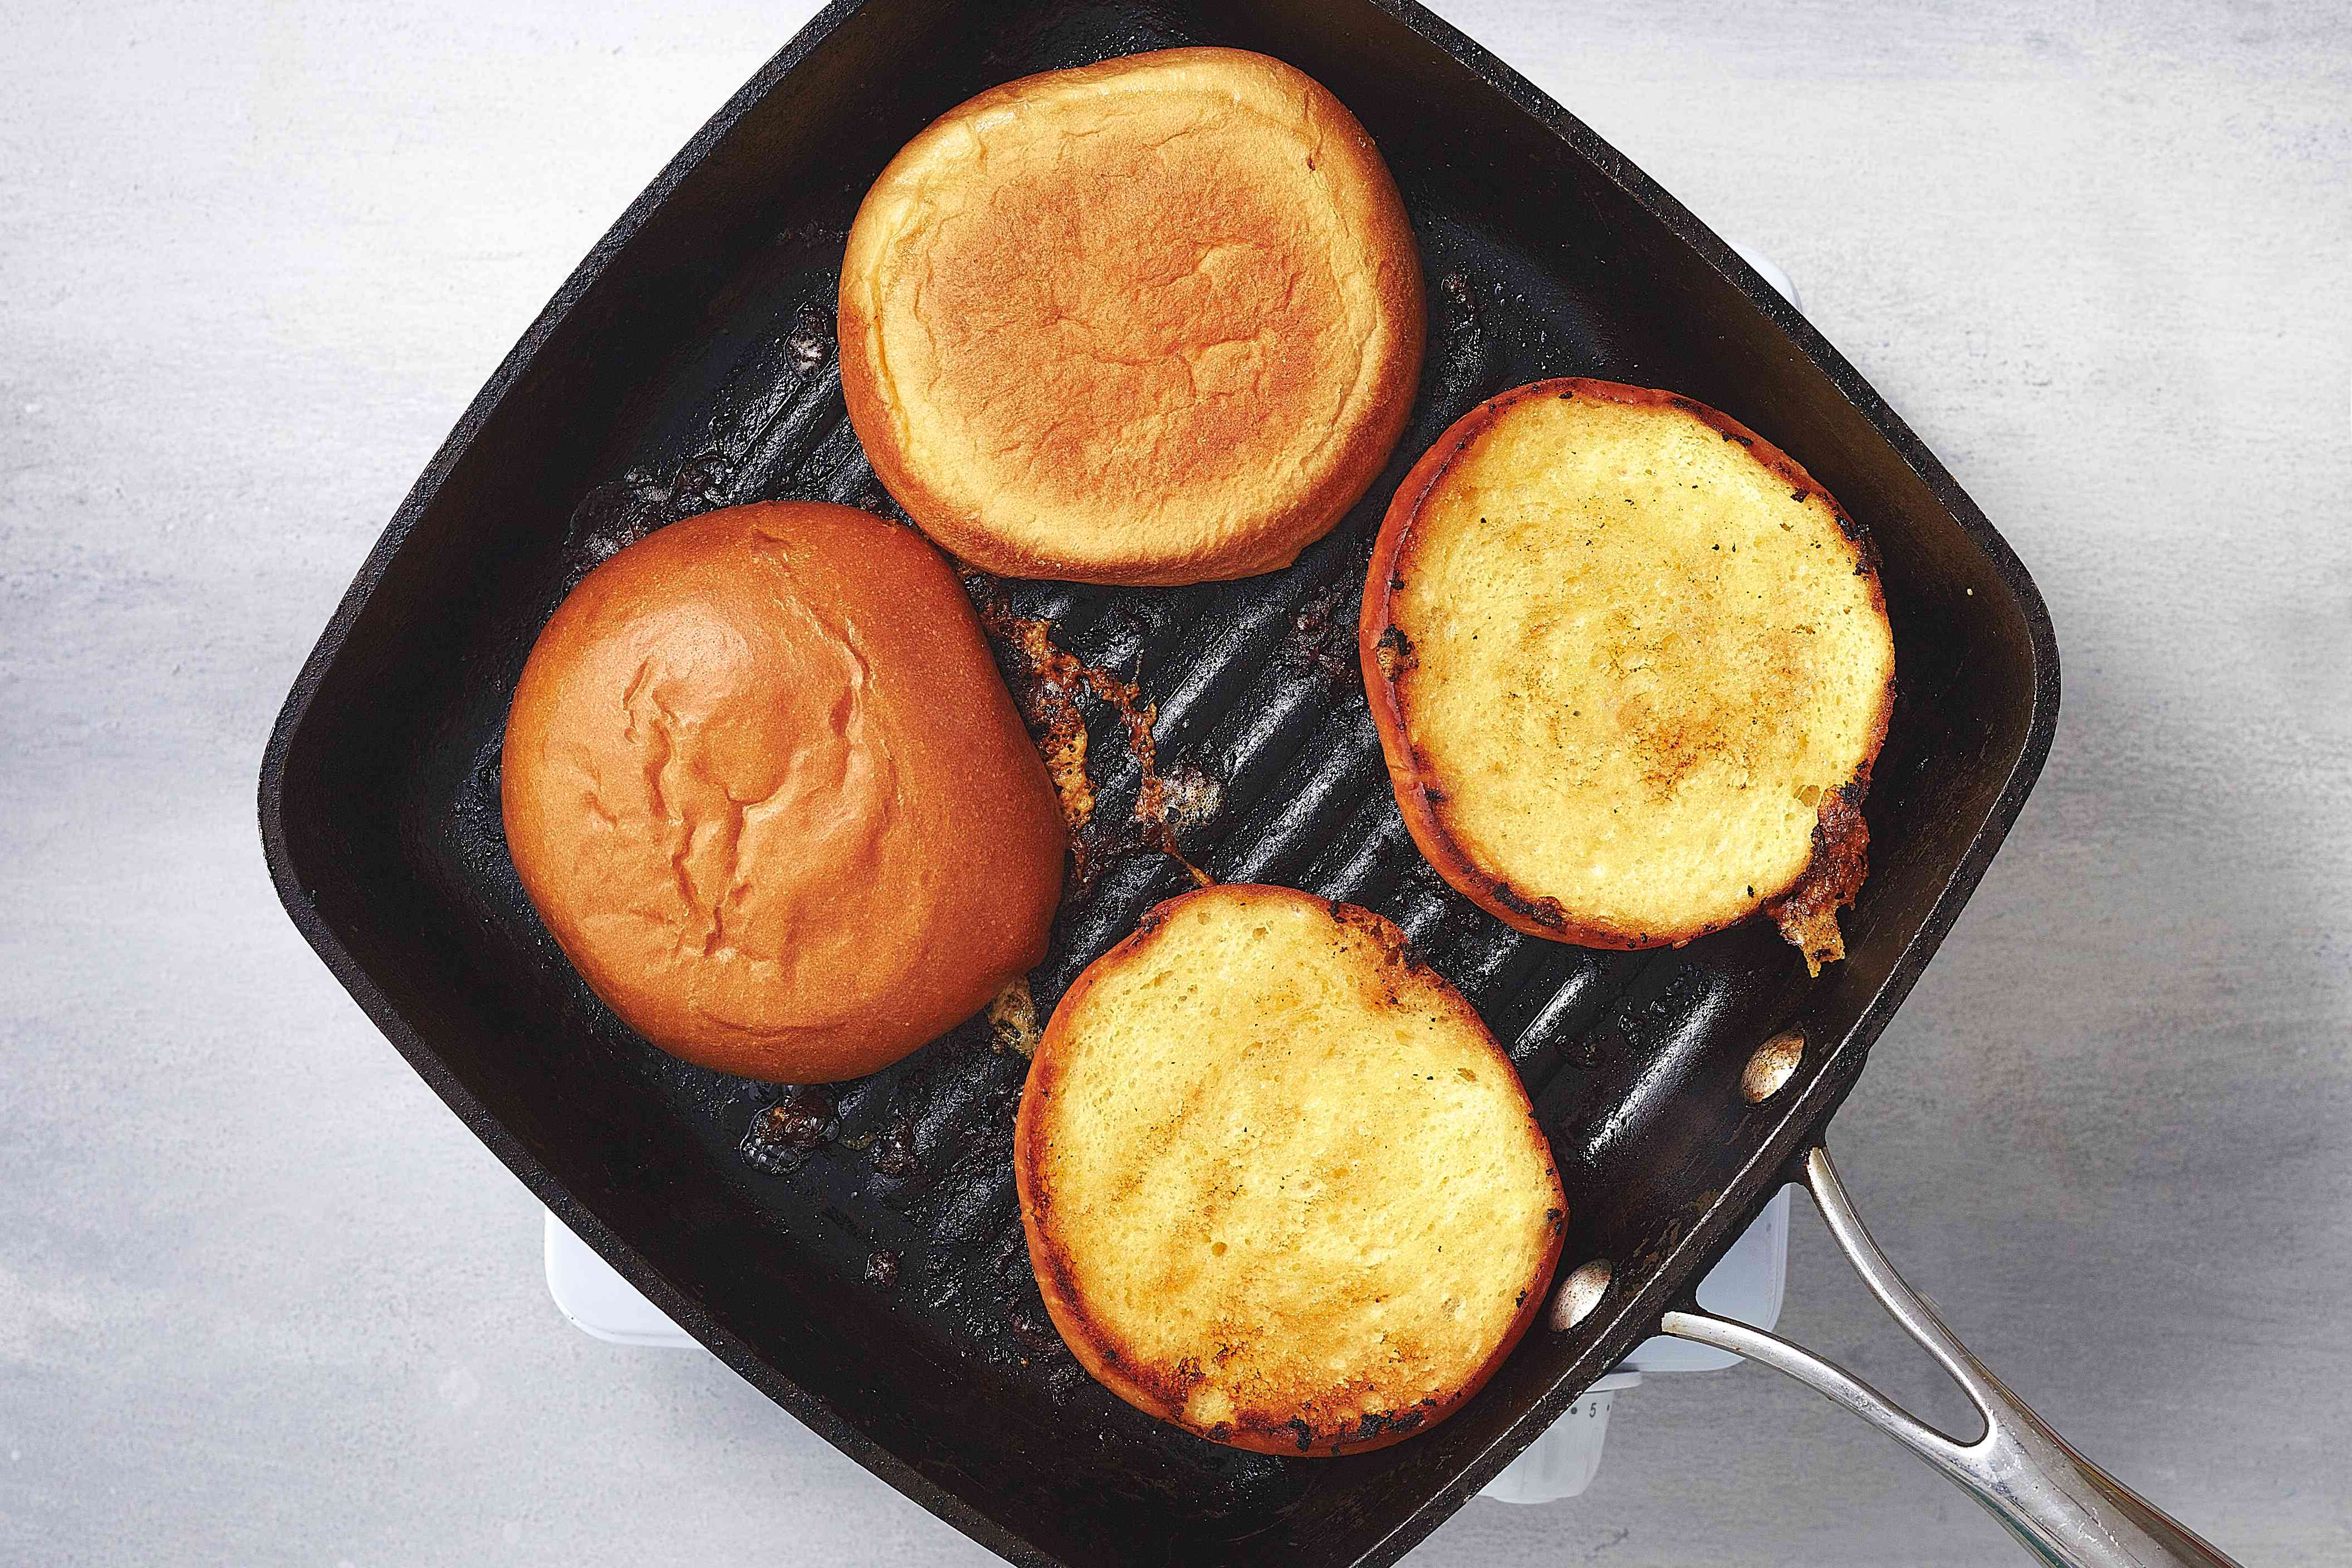 toasting buns on a grill pan